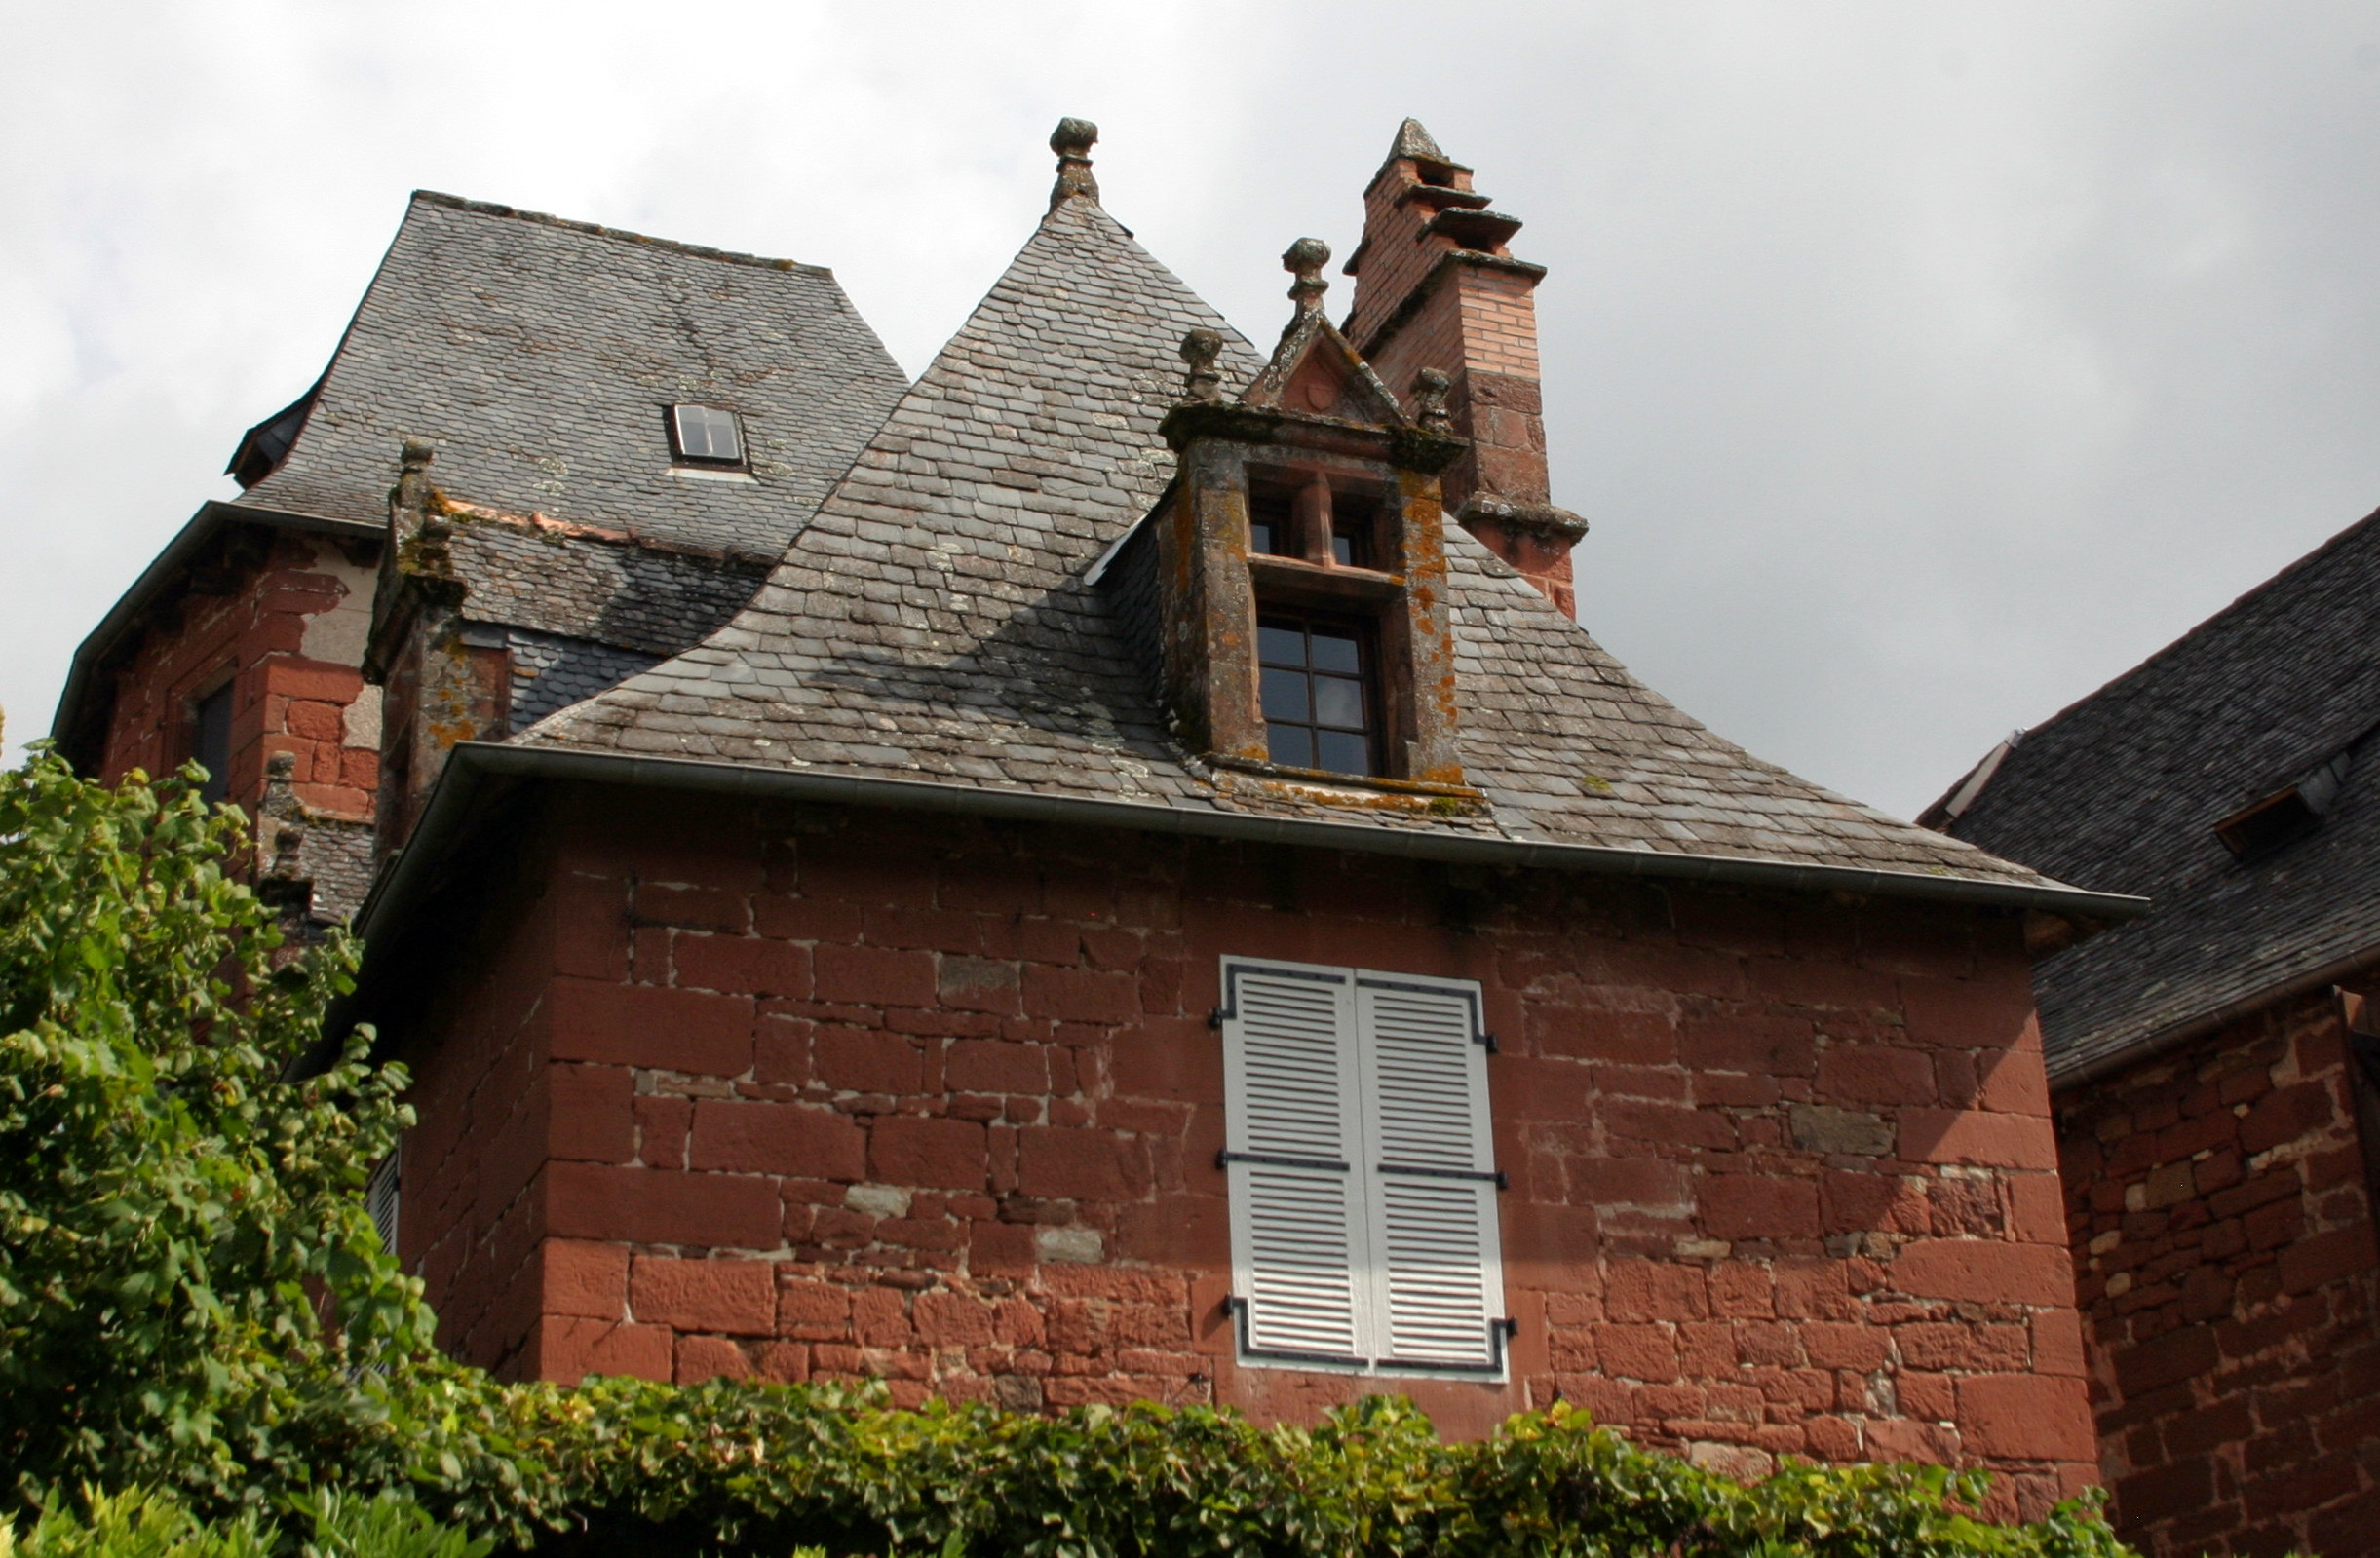 Collonges-la-Rouge, France - Happy window